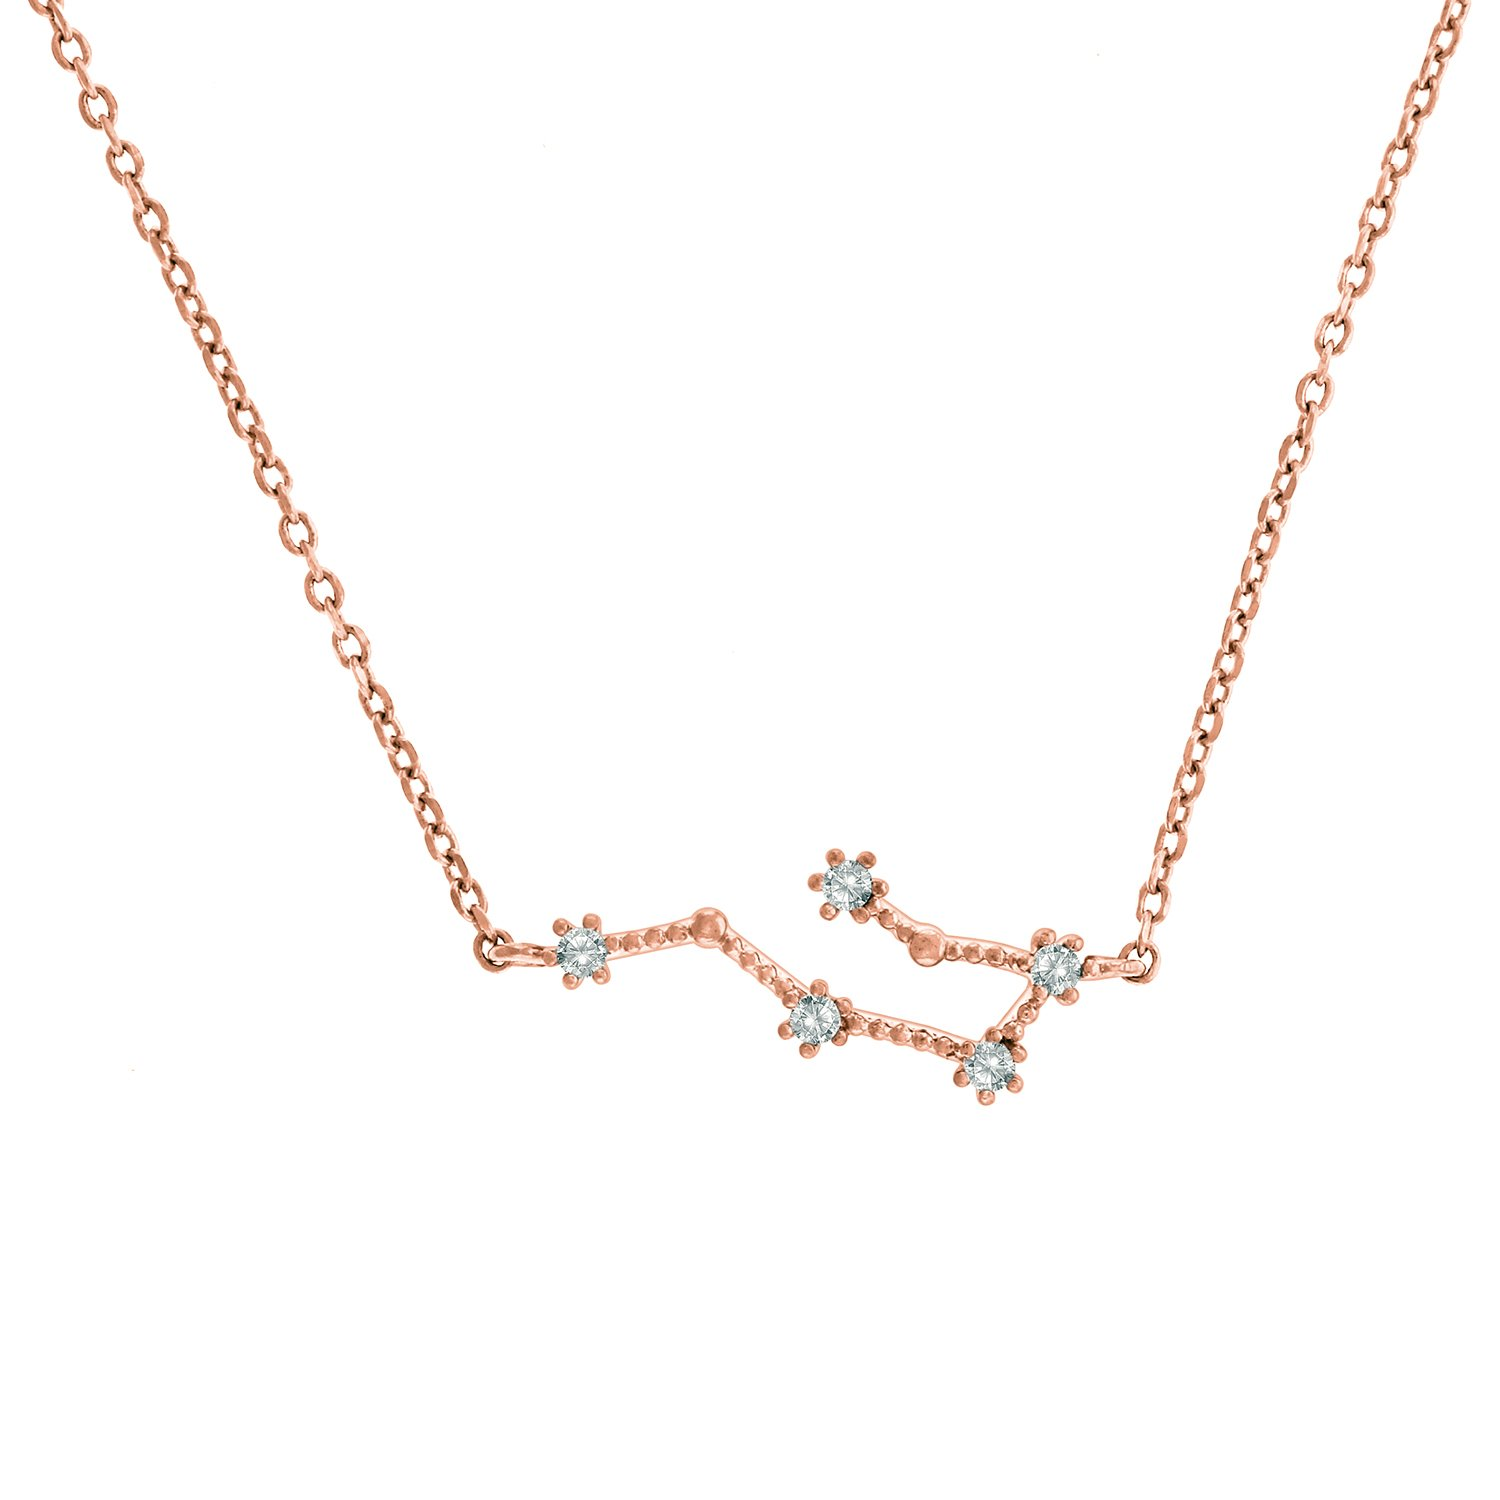 b68a21d4f0bd Amazon.com  PAVOI 14K Rose Gold Plated Astrology Constellation Horoscope  Zodiac Necklace 16-18